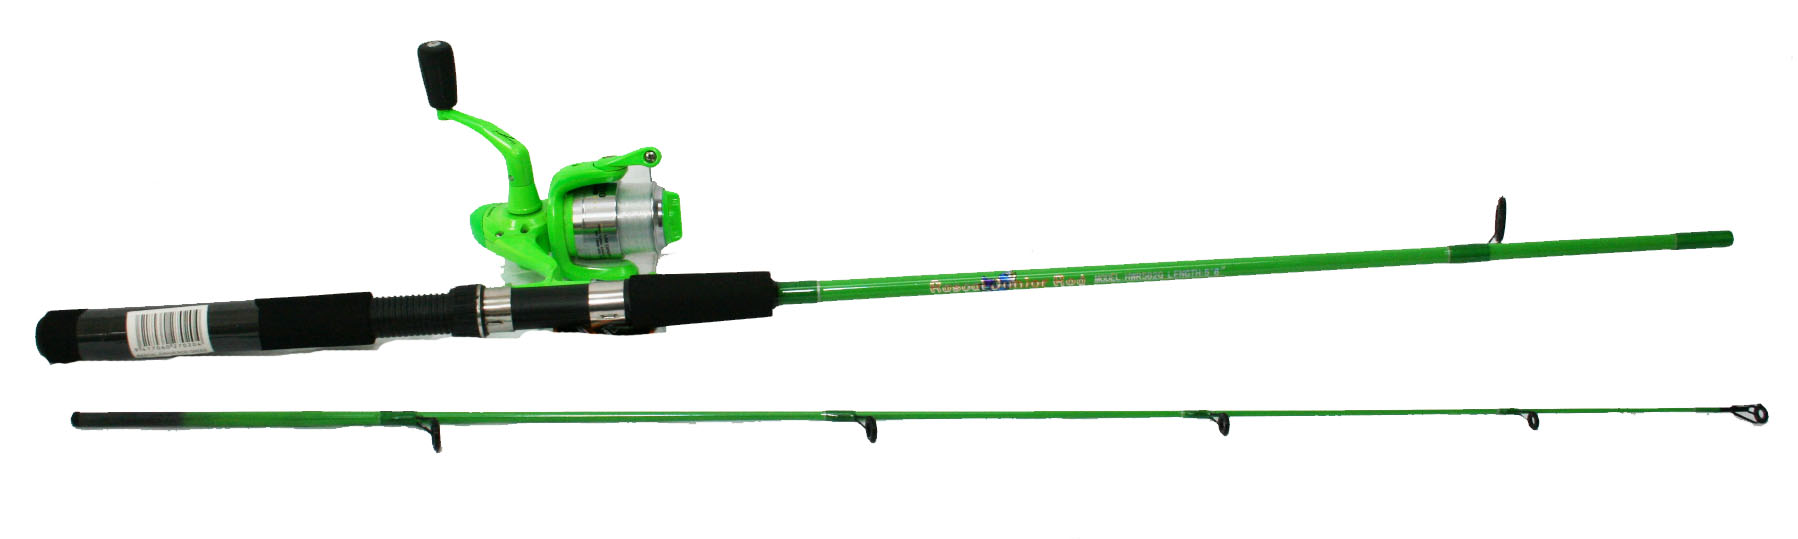 Fishing tackle rods reels lures lines accessories for Kids fishing gear